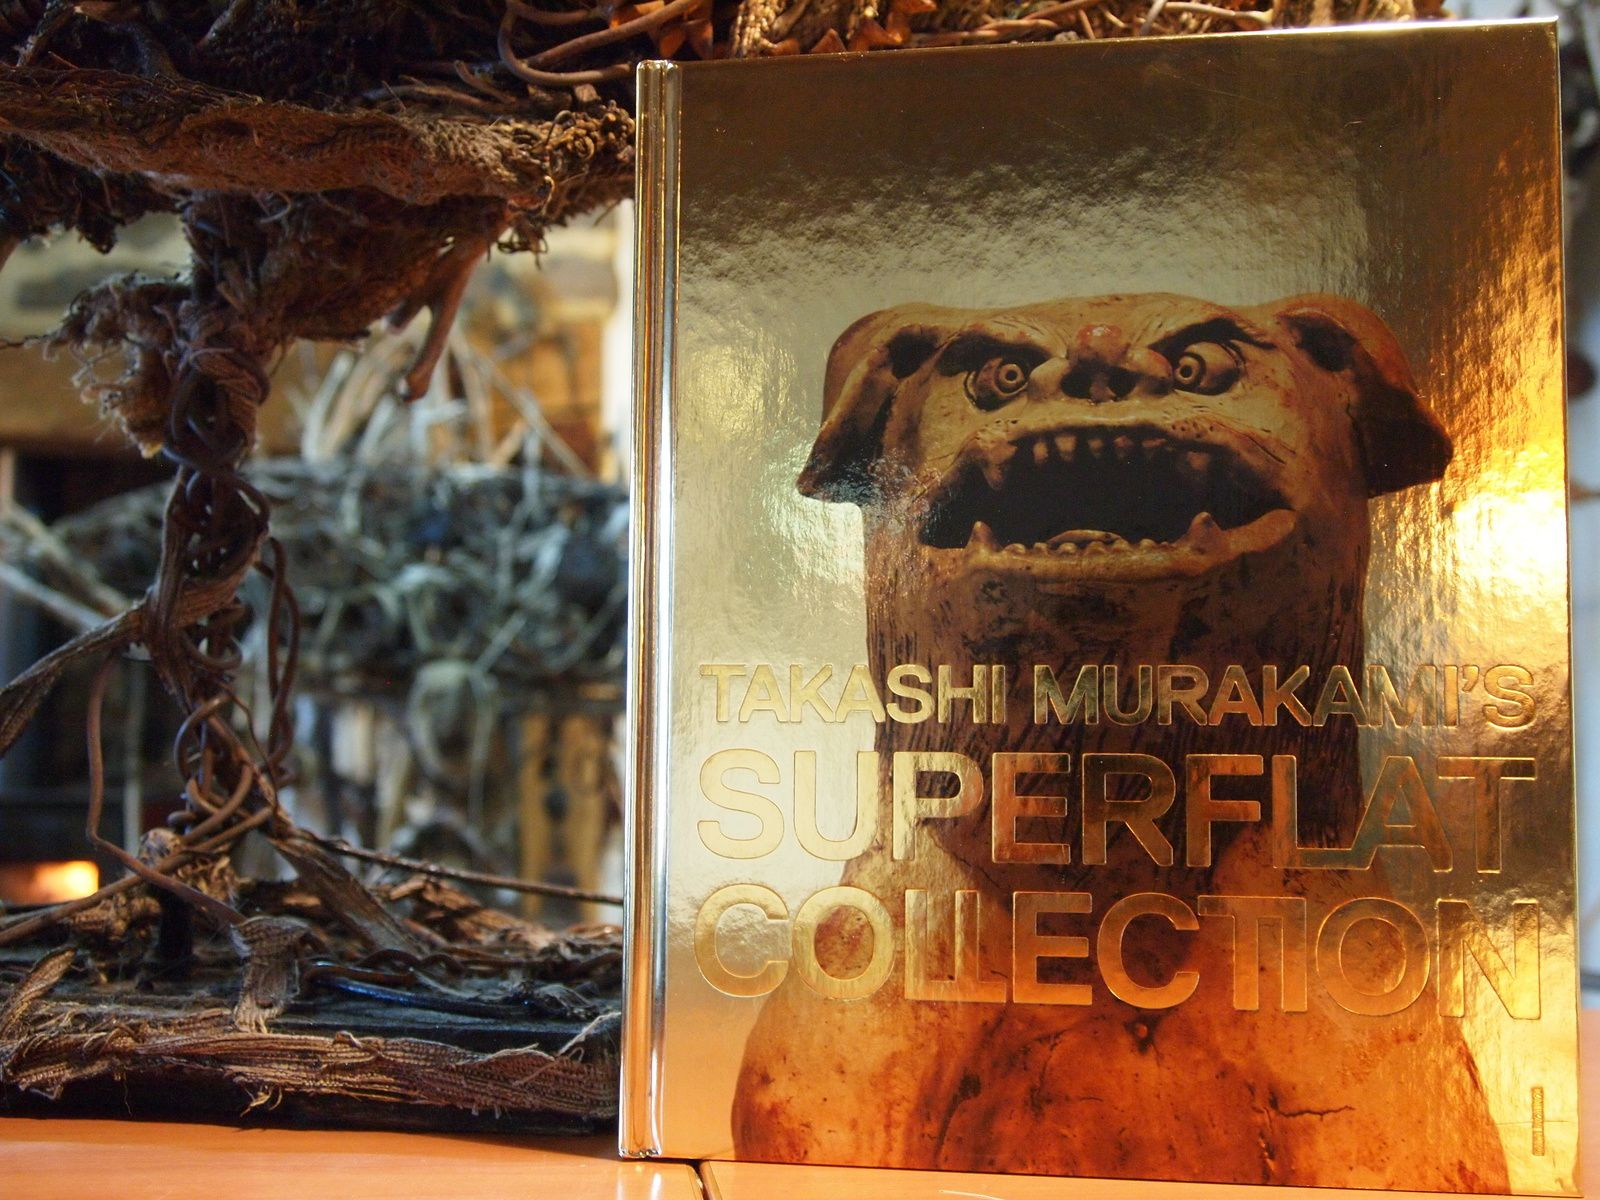 Catalogue de l'exposition Takashi Murakami's Superflat Collection